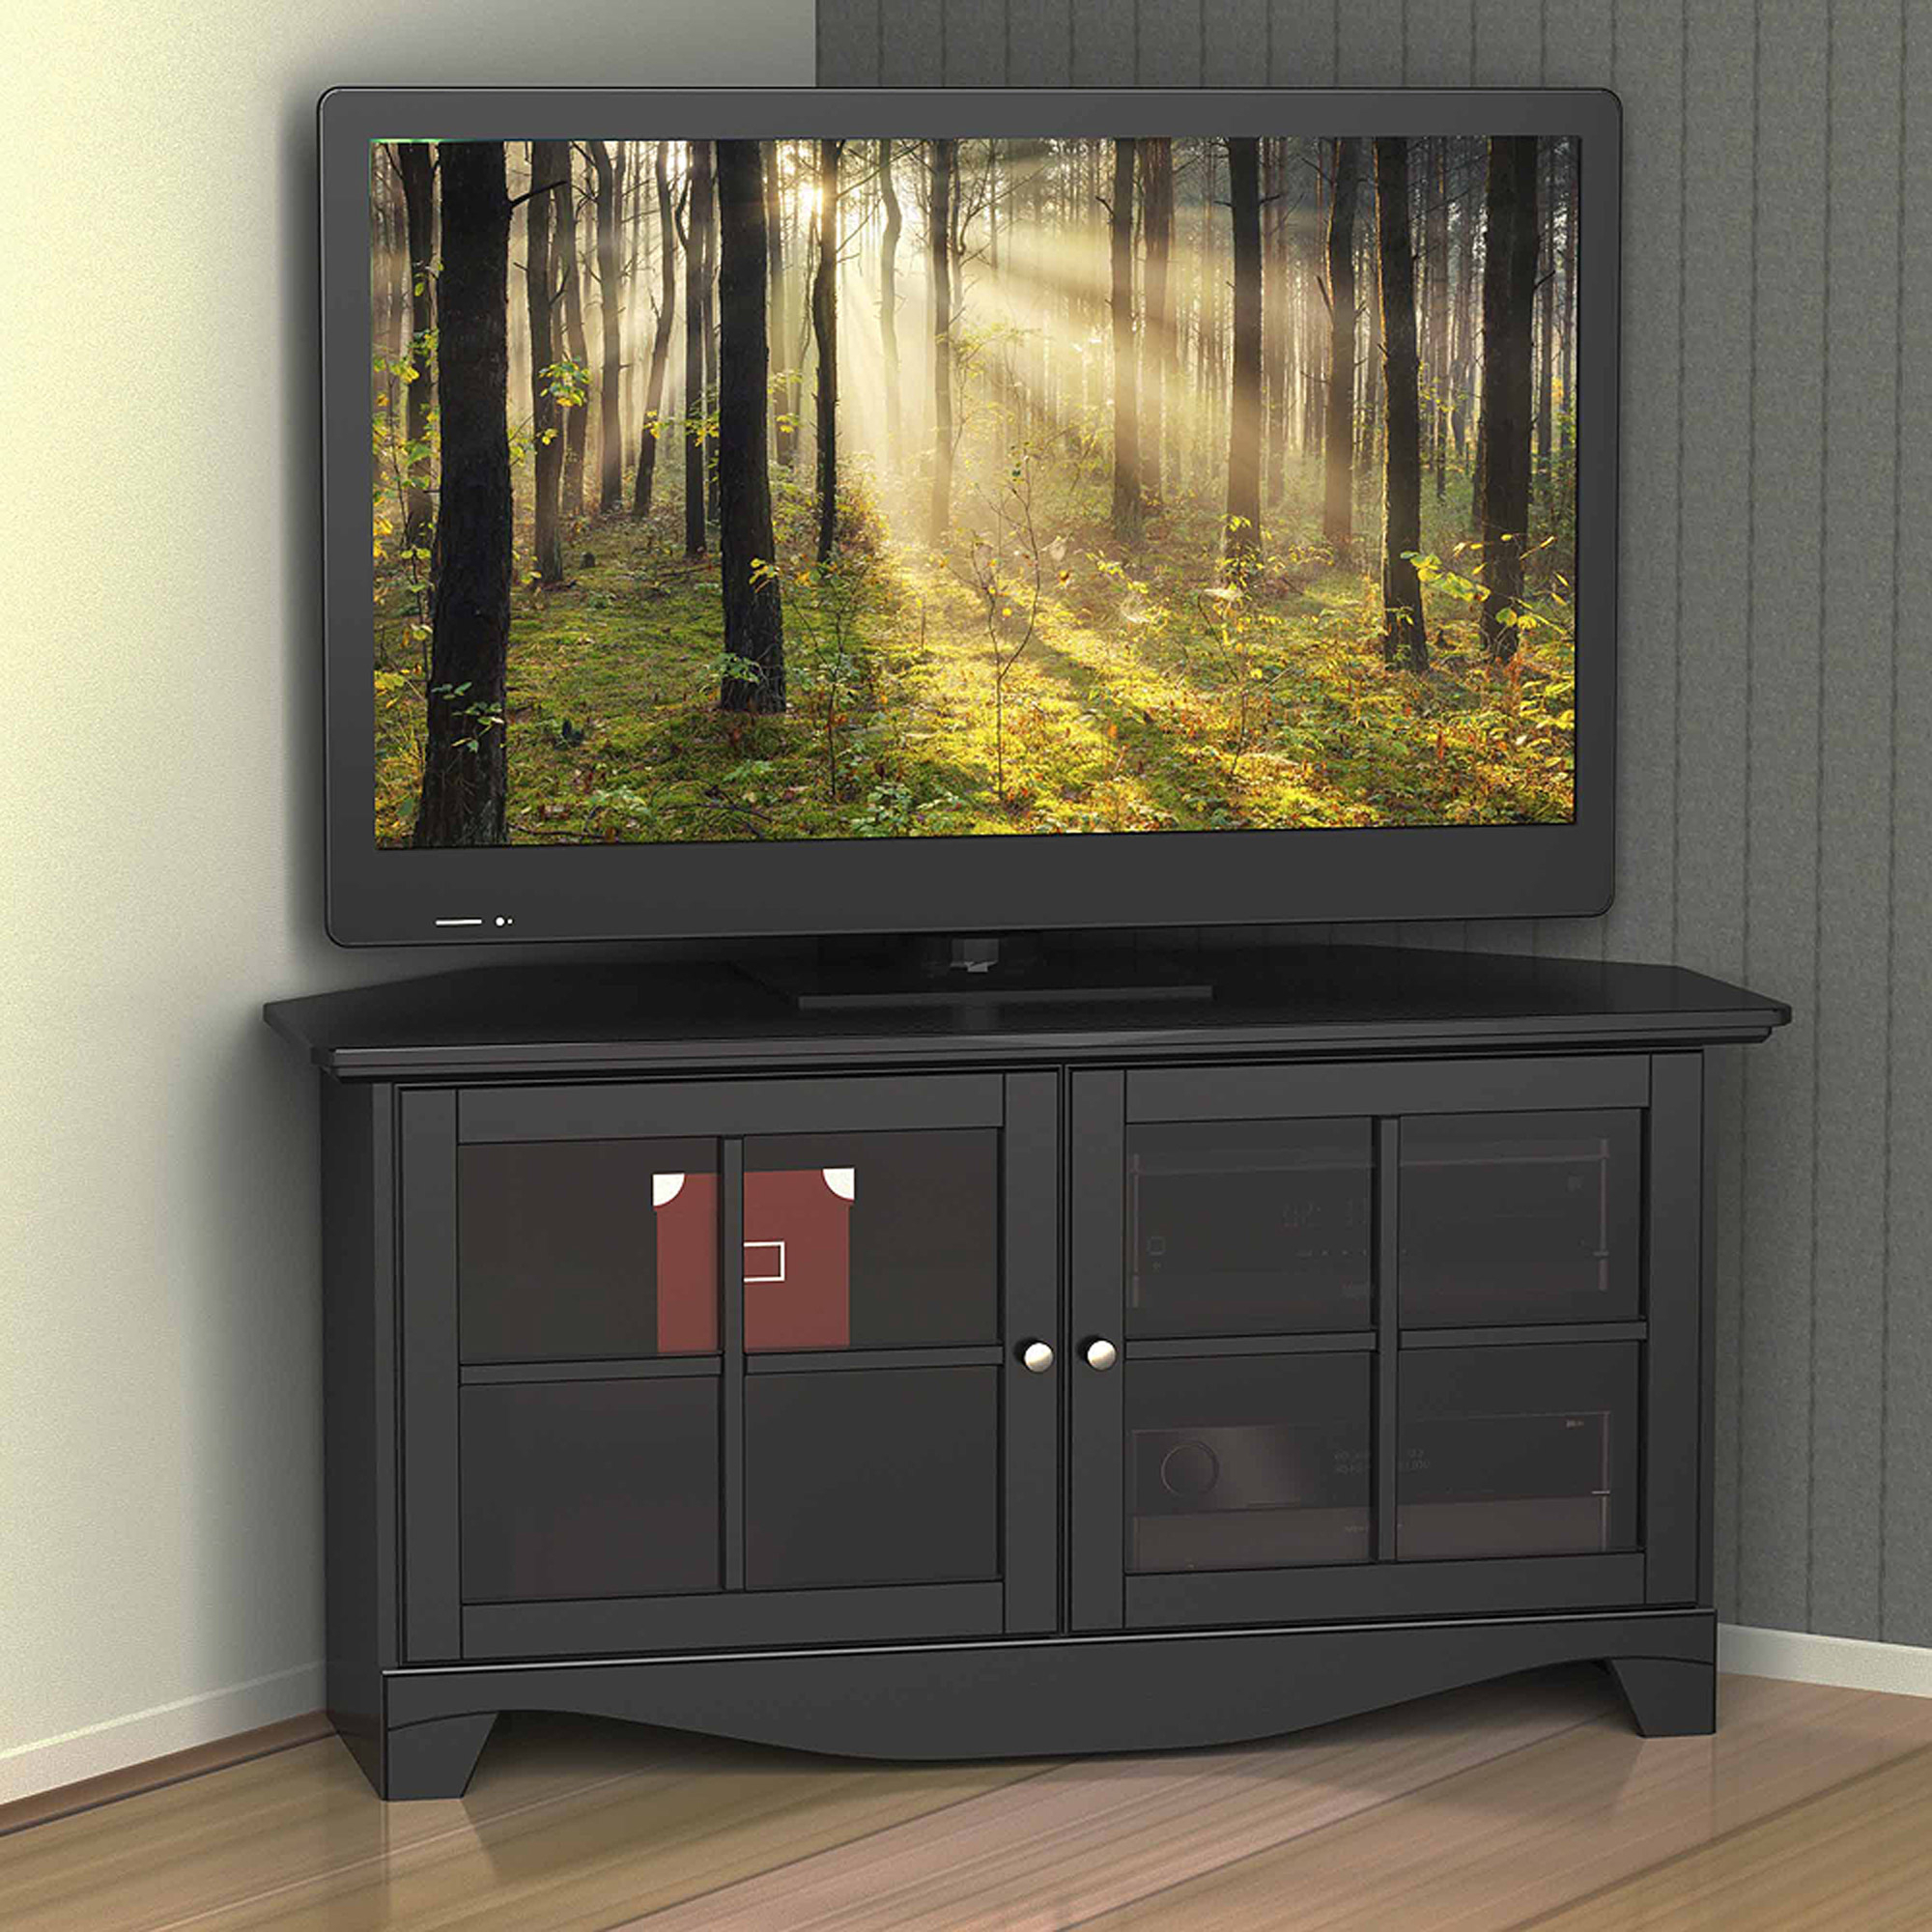 Favorite Tv Stands For Corners Regarding Corner Tv Stand Glass As Well Cabinet With 50 Inch Plus Mount (View 18 of 20)